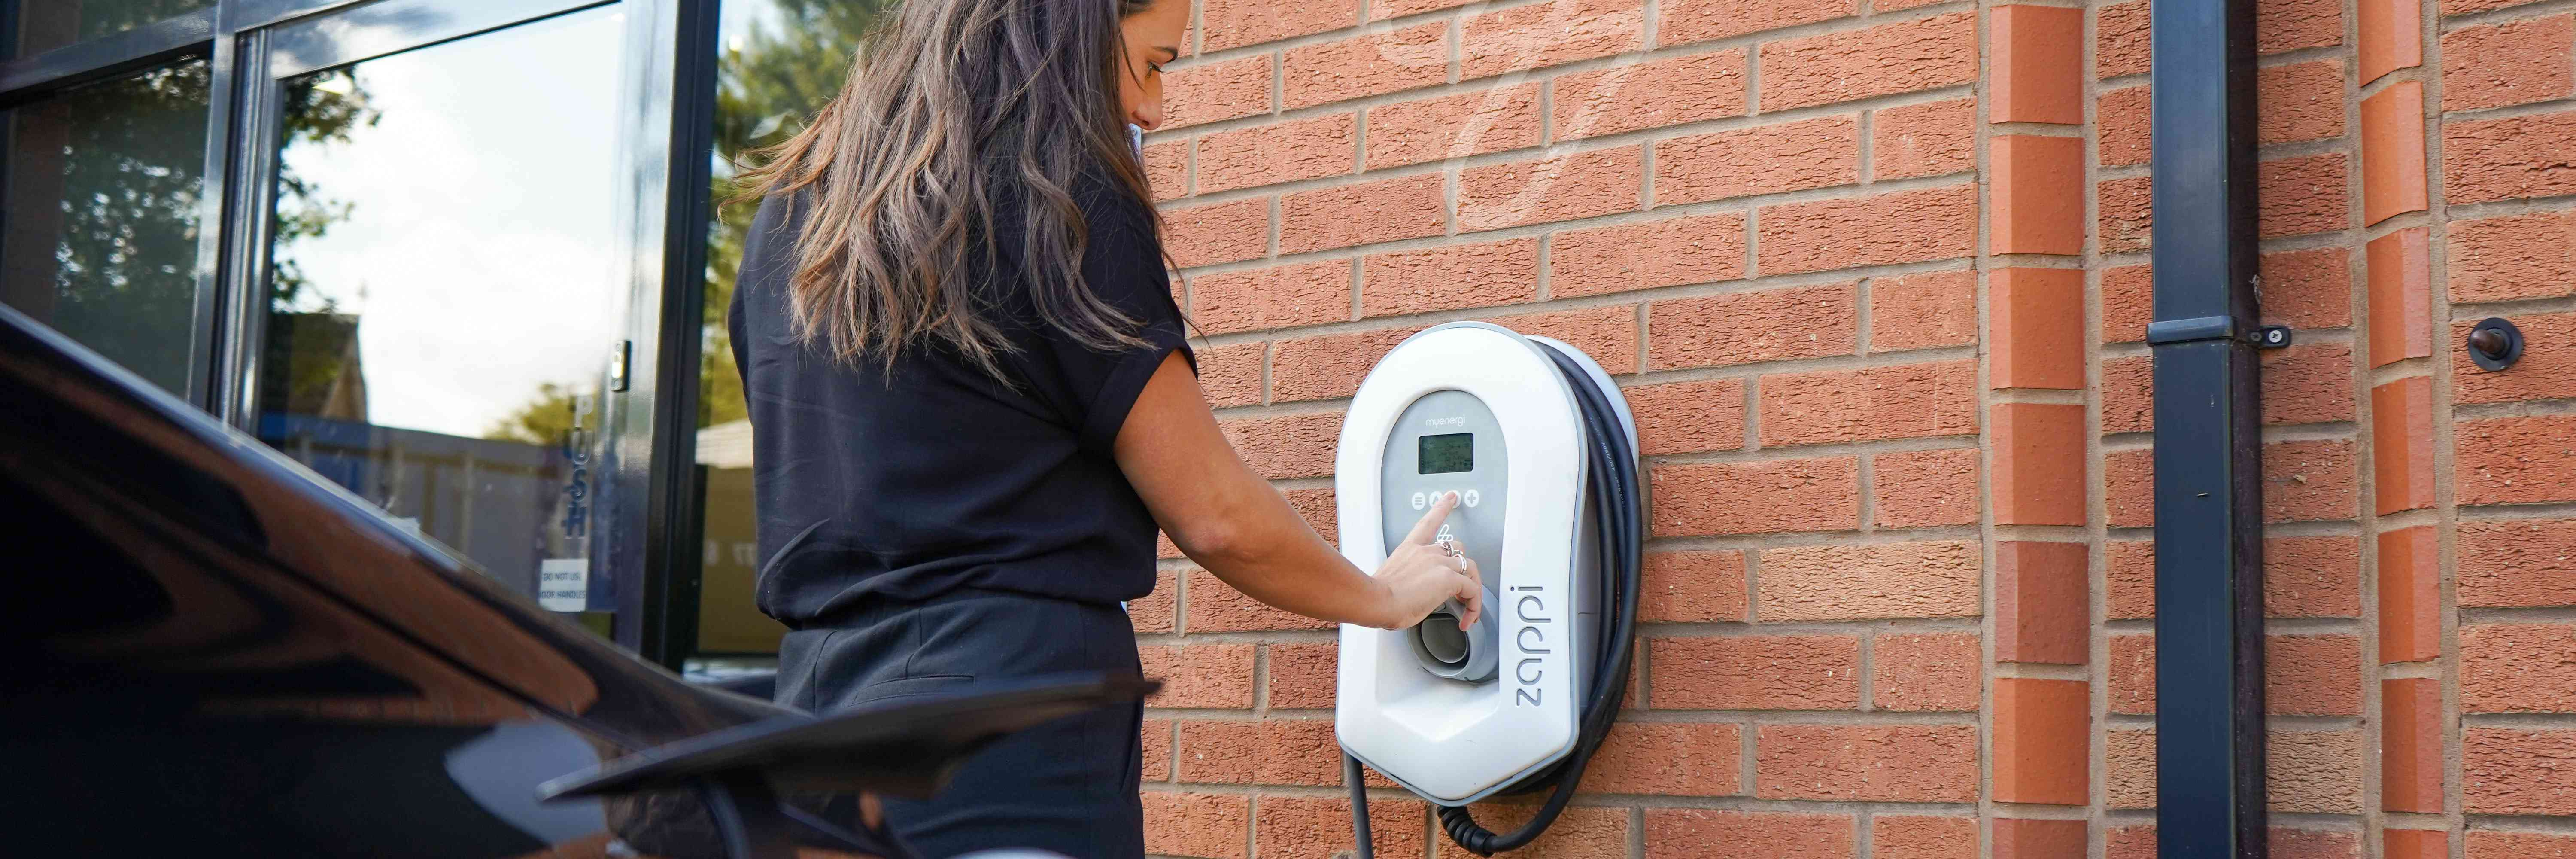 Woman using a public electric vehicle charger